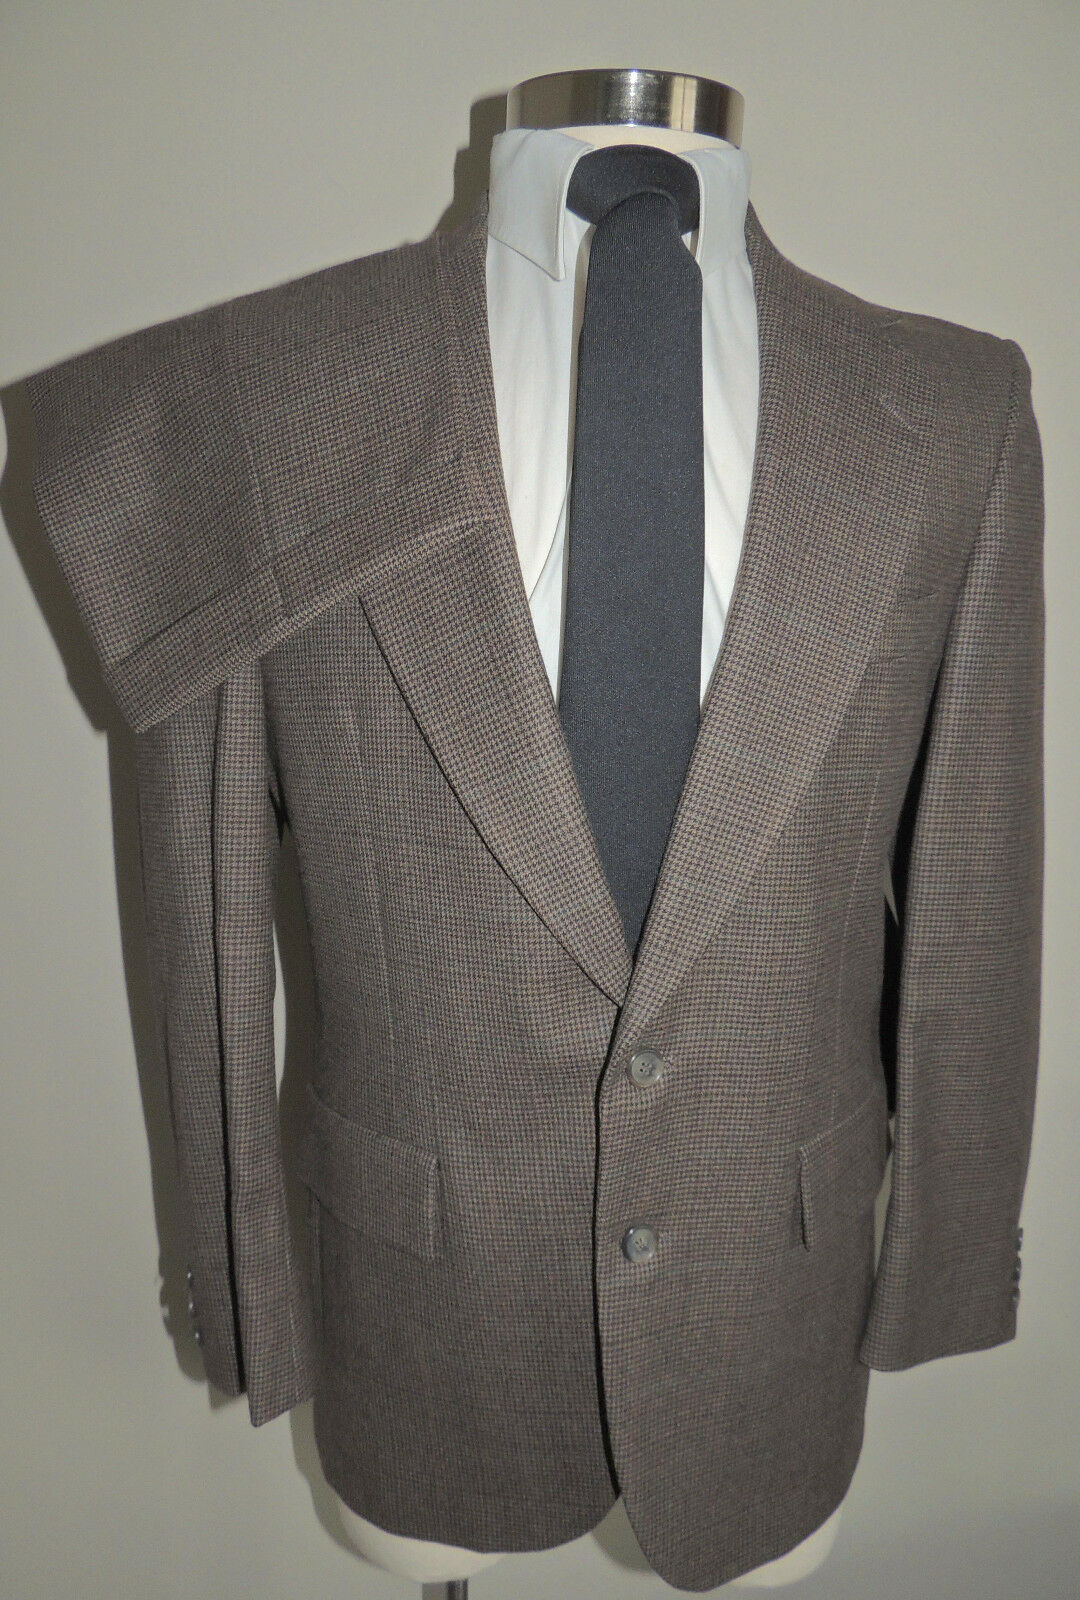 MENS EMBASSY SQUARE BROWN HOUNDSTOOTH 100% WOOL 2 BUTTON 2 PIECE SUIT 38R